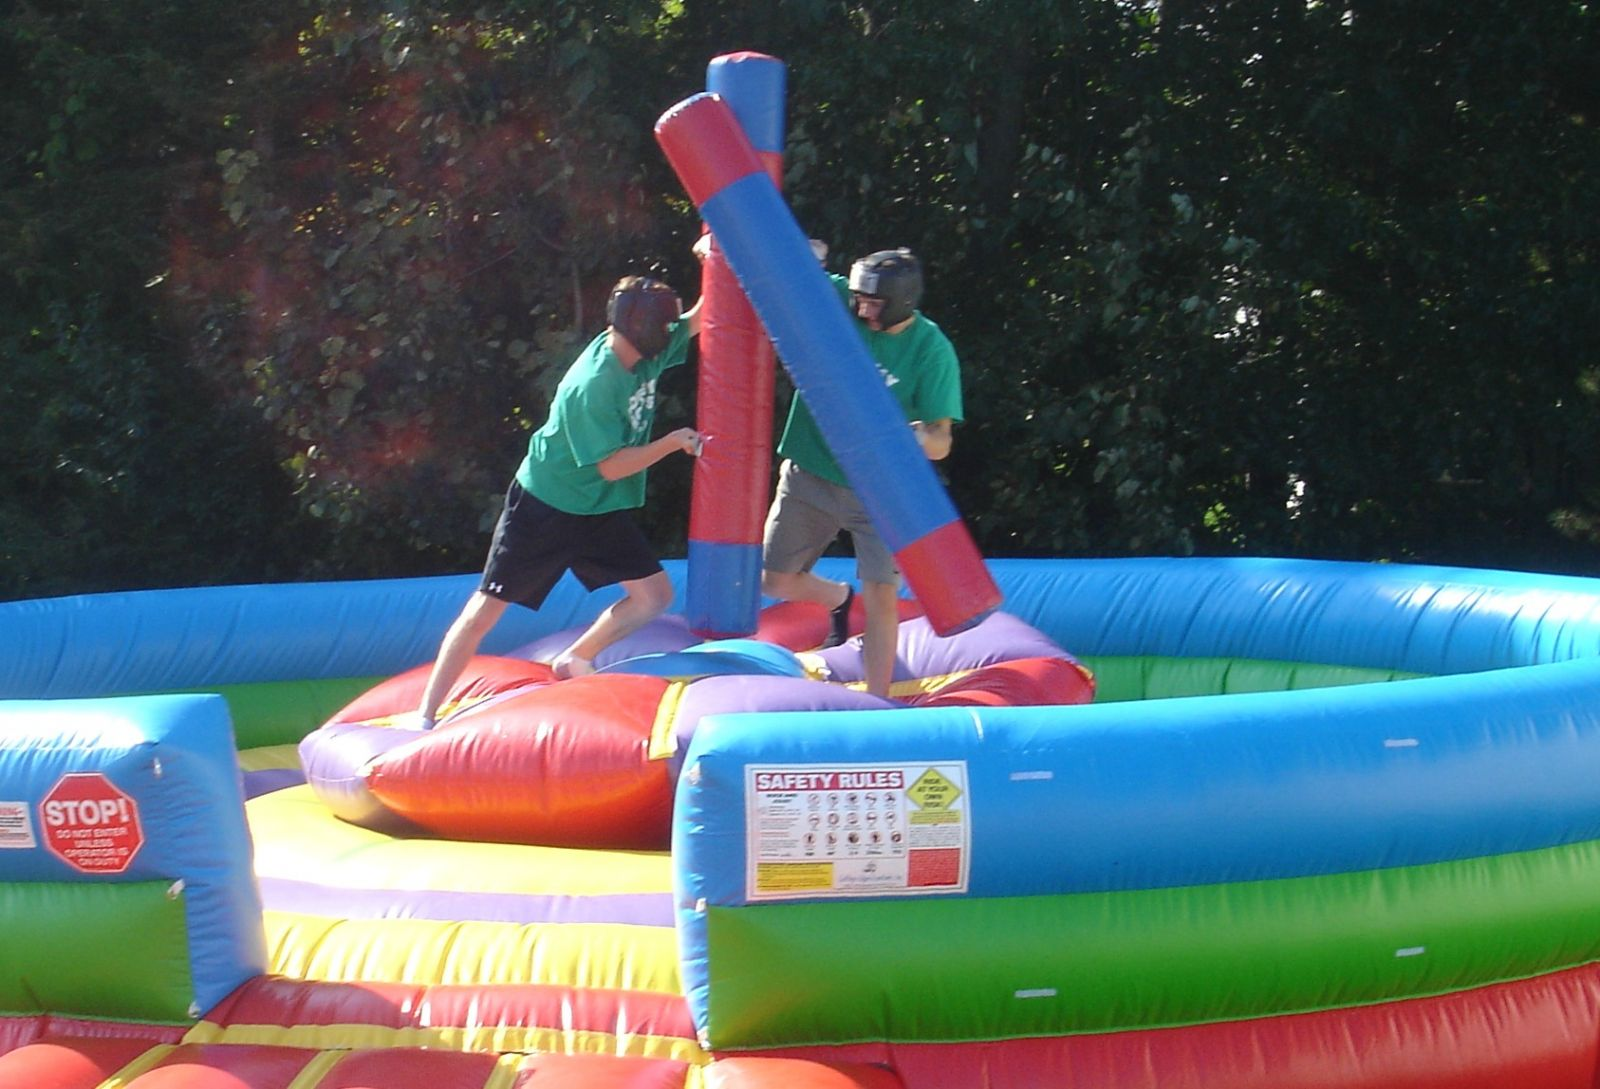 2 Young Men on Rock'Em and Sock'Em Joust